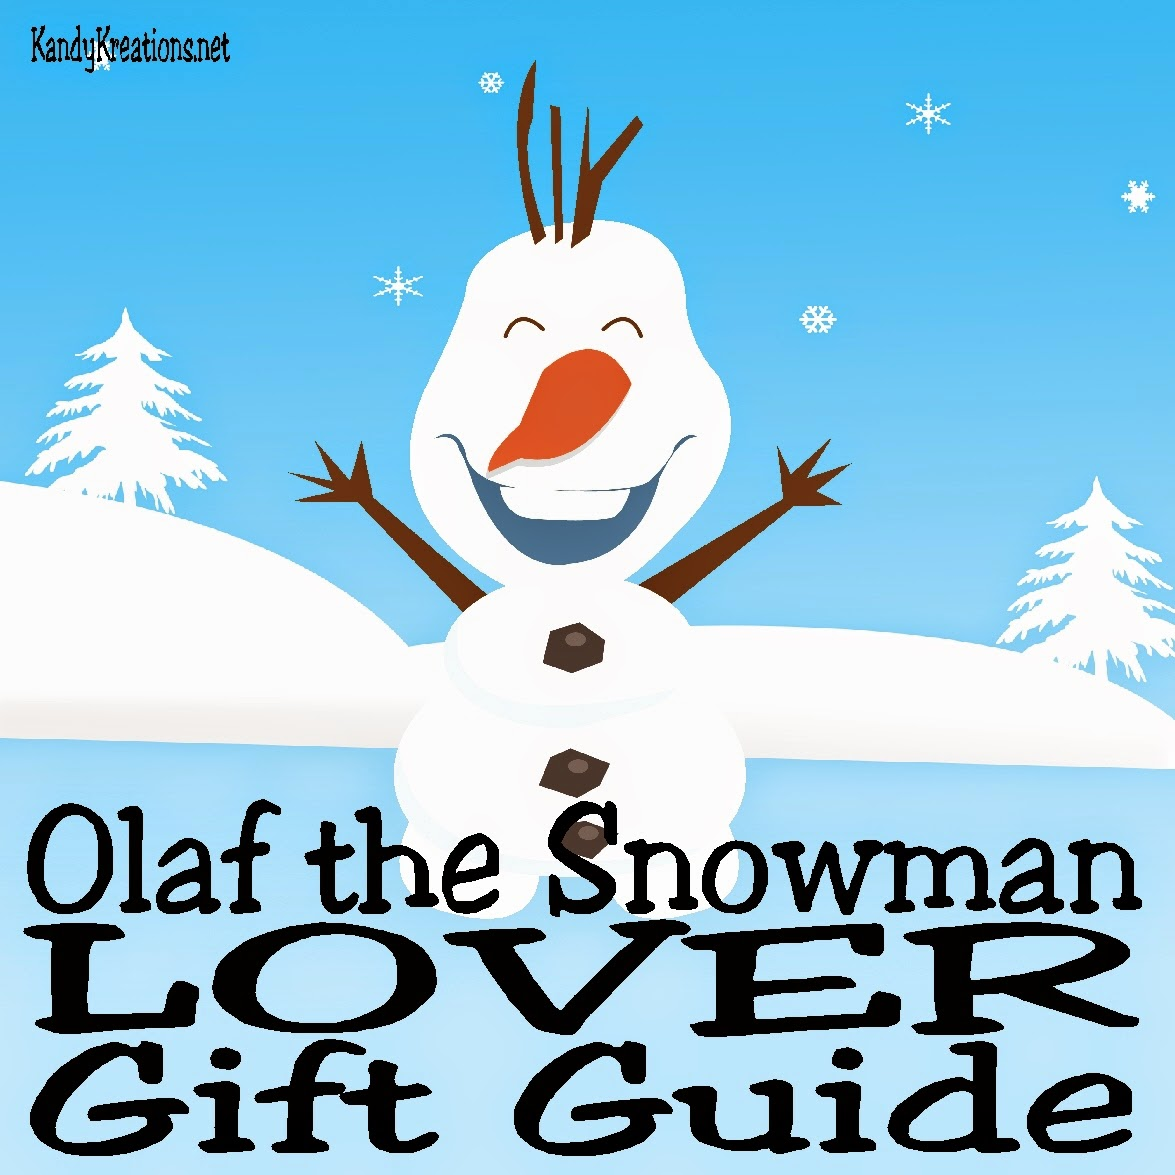 So you know someone who knows every Olaf the Snowman quote by heart? They want to build a snowman every day? Then this gift guide is for you. Here are some of the most unique and fun Olaf the Snowman gifts.